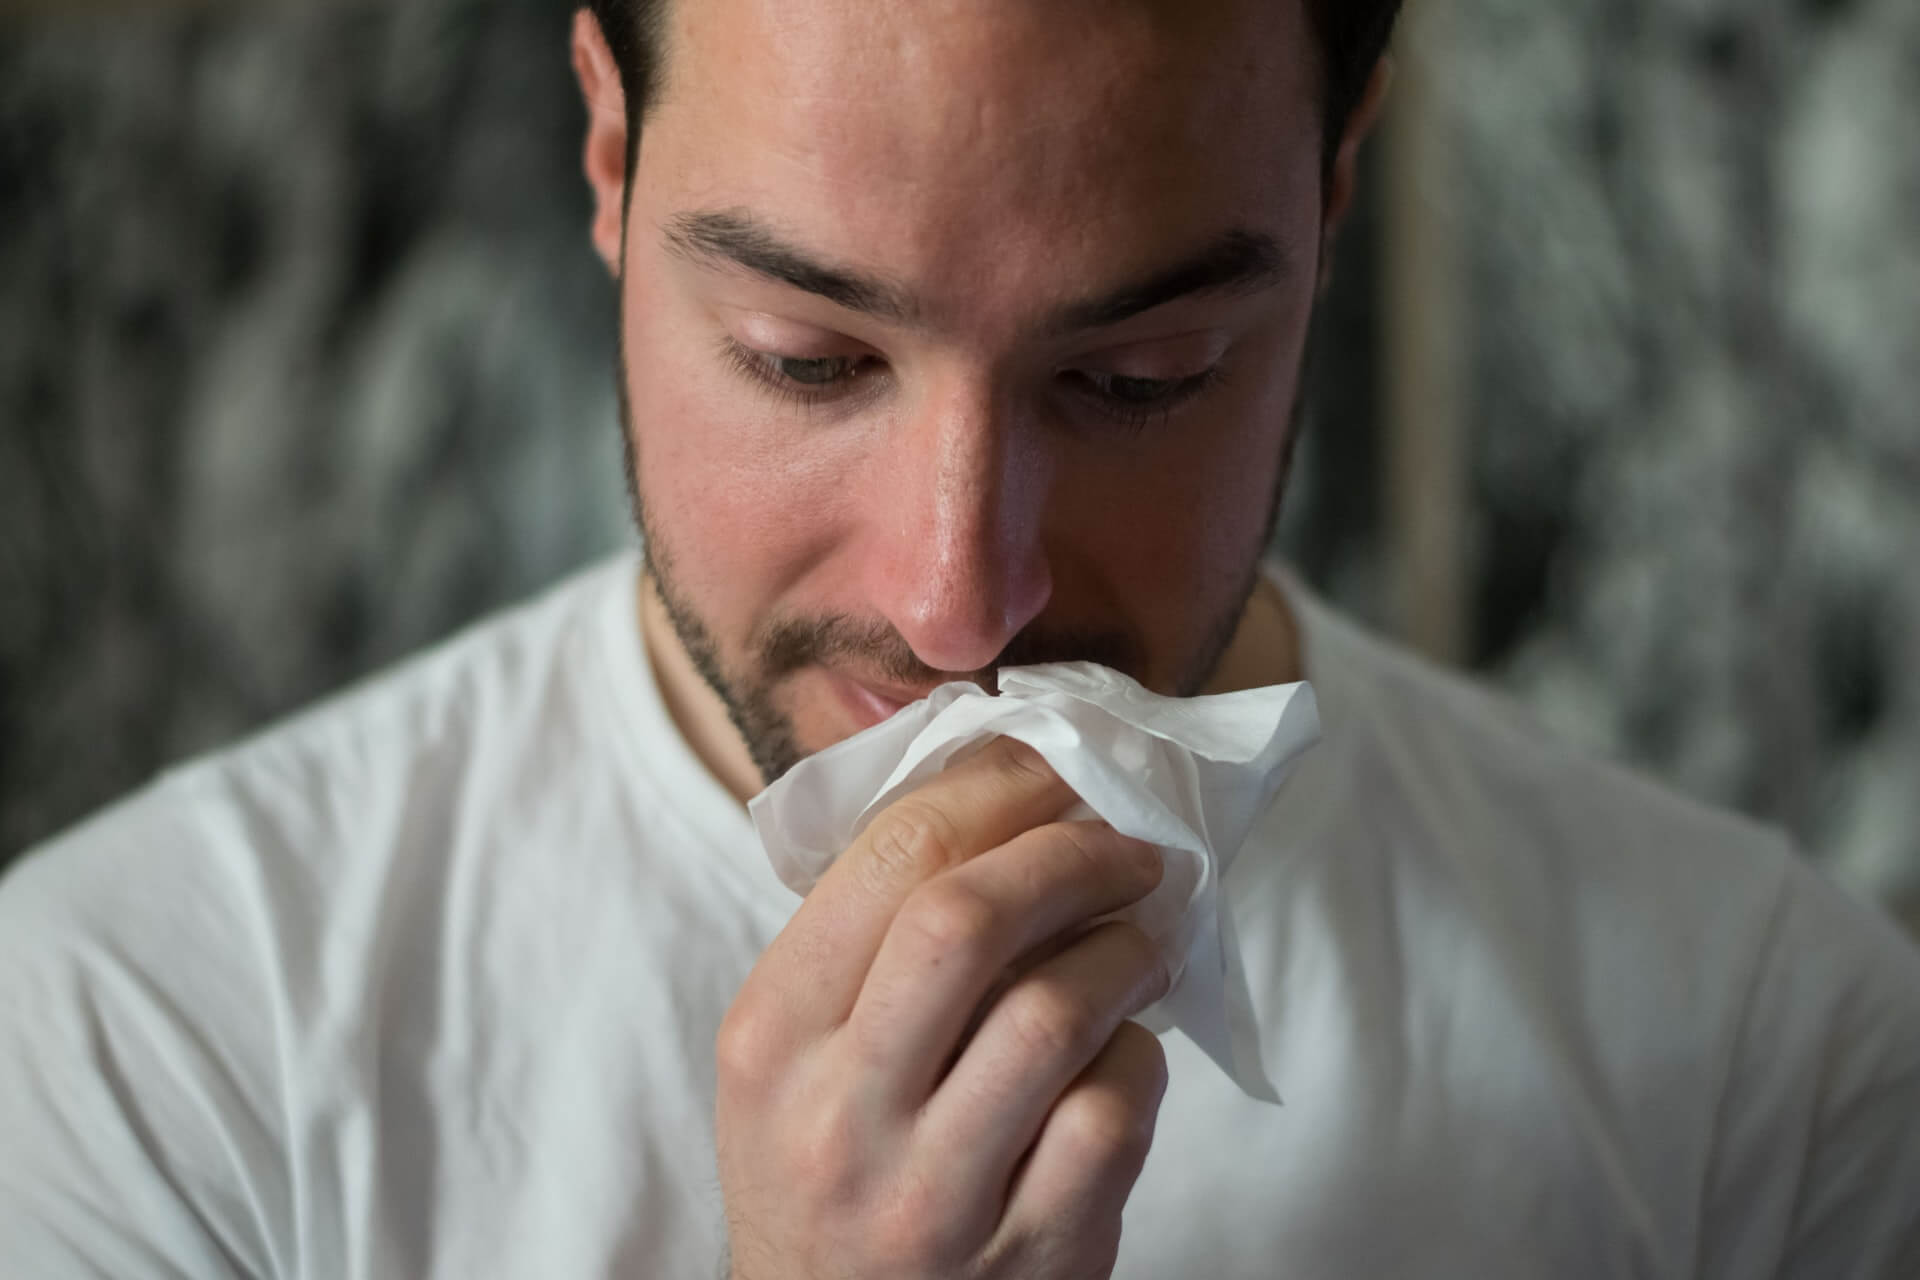 man wearing white shirt wiping nose with tissue